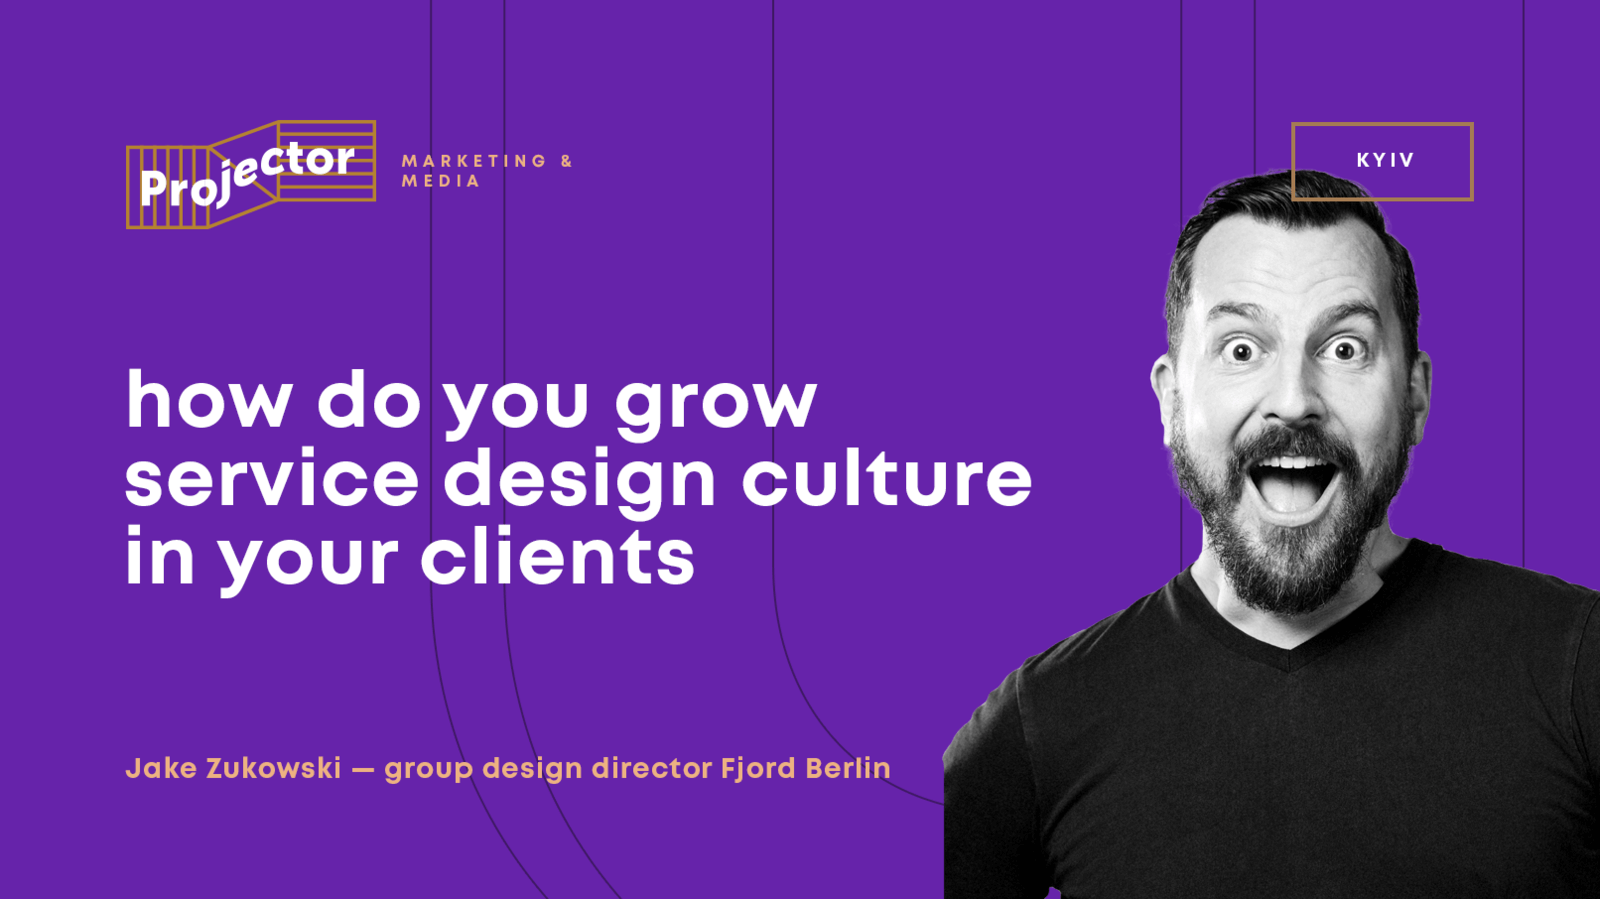 How do you grow service design culture in your clients